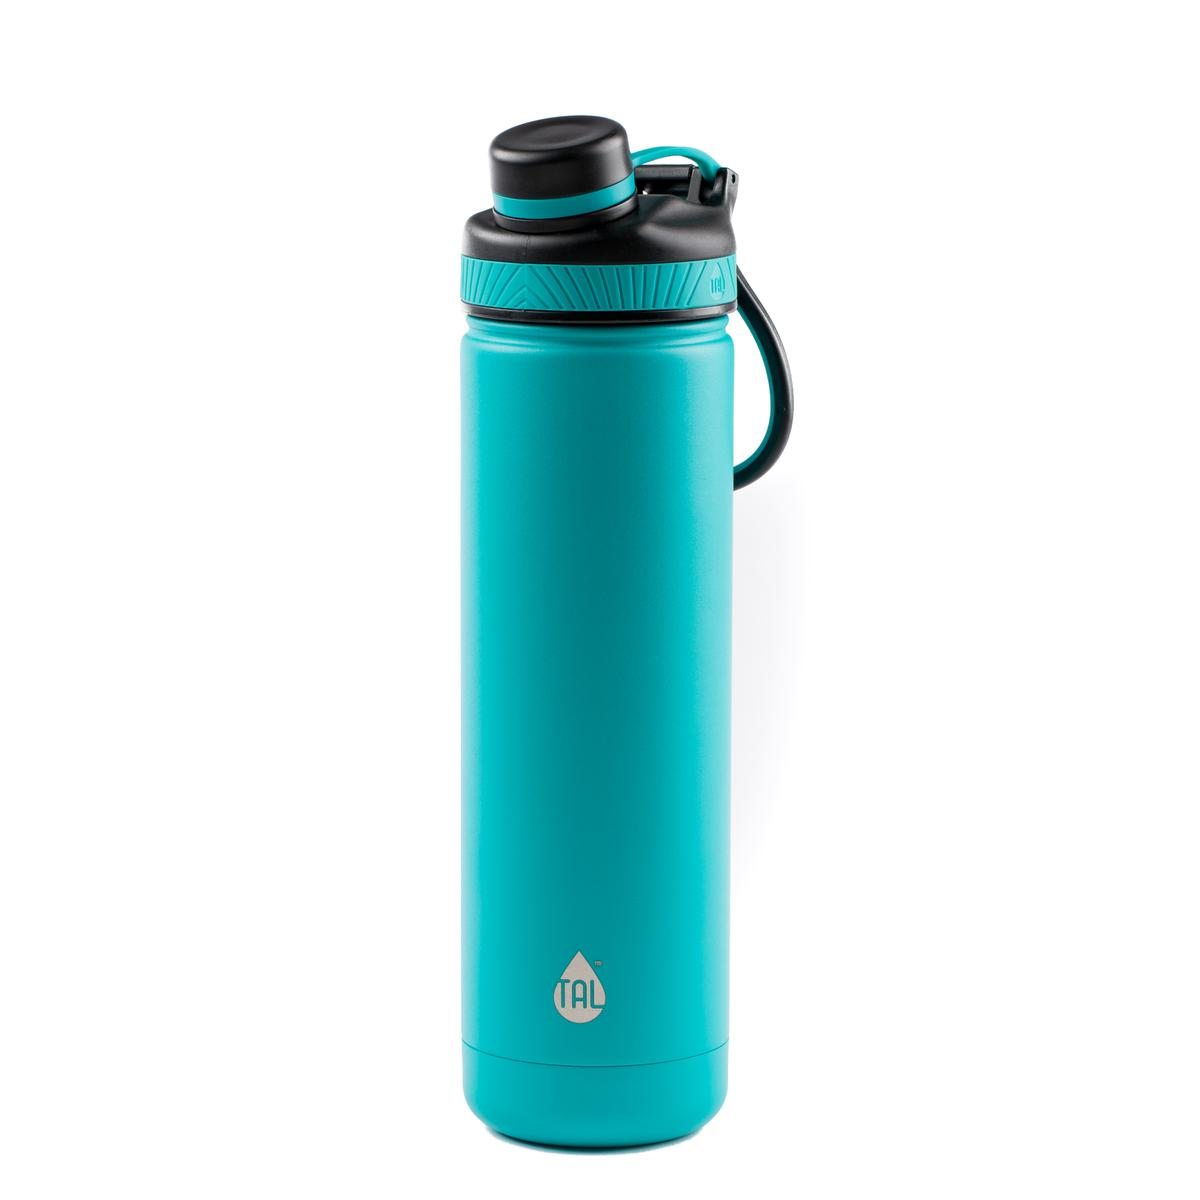 TAL Teal 26oz Double Wall Vacuum Insulated Stainless Steel Ranger'Ñ¢ Pro Water Bottle